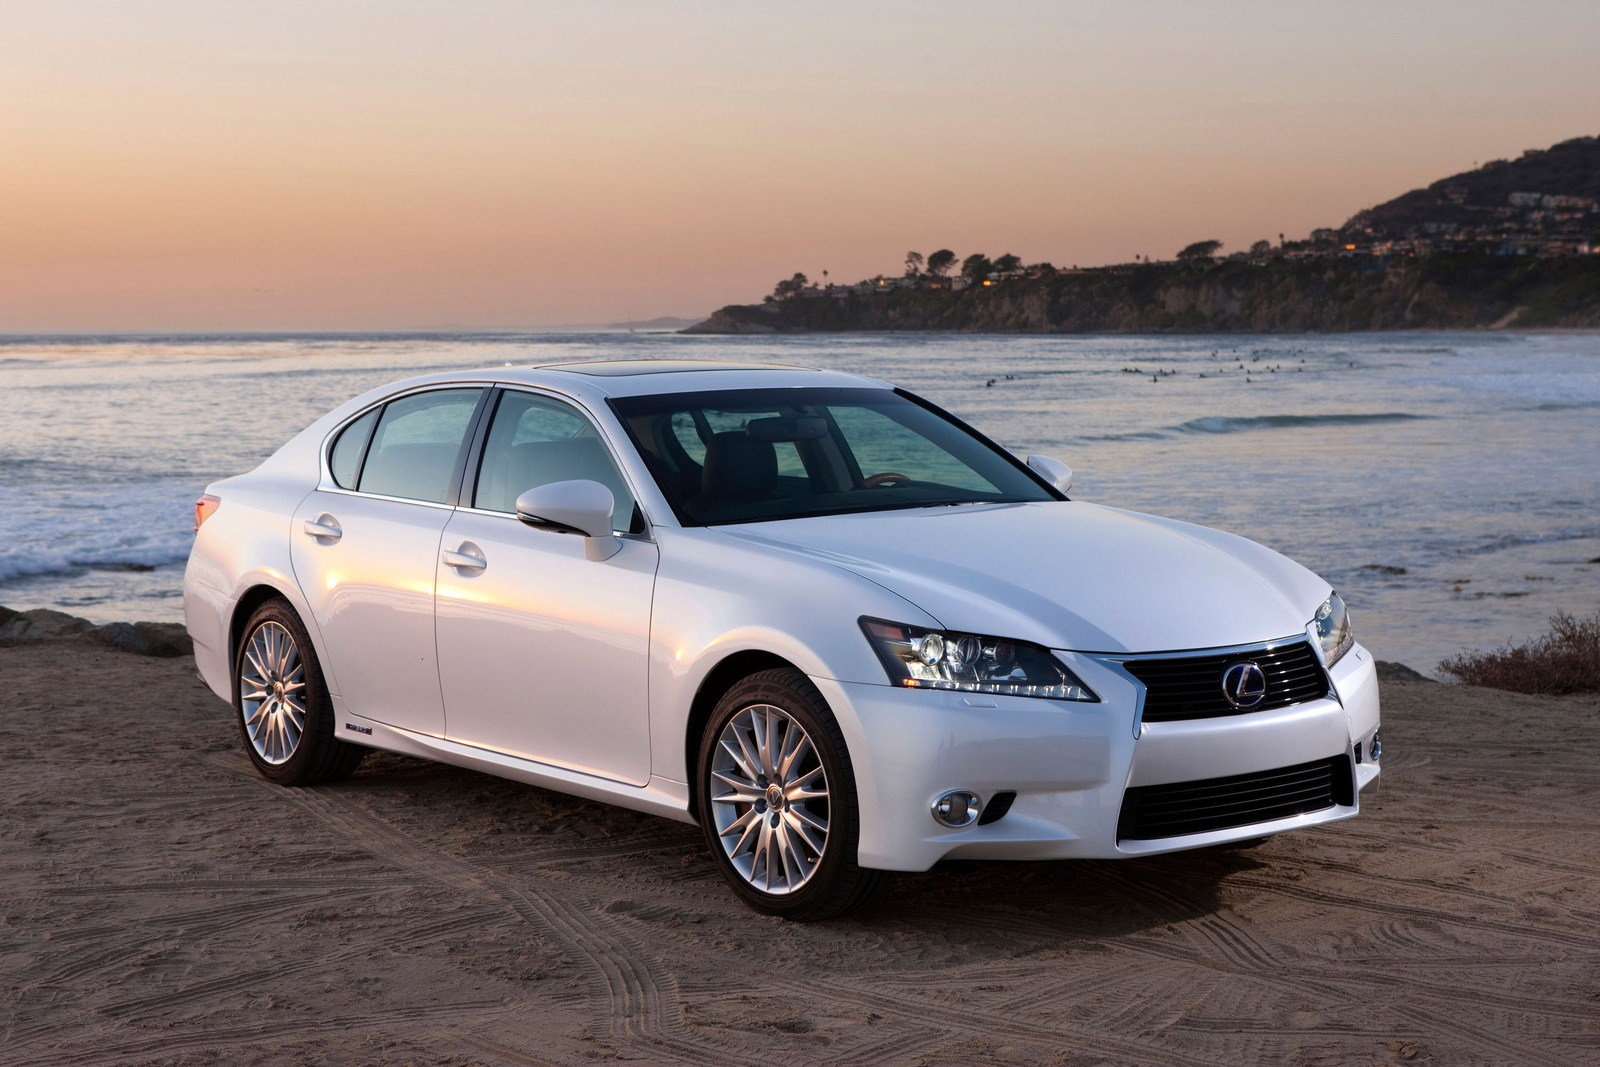 2015 lexus gs 450h f sport picture 567347 car review top speed. Black Bedroom Furniture Sets. Home Design Ideas